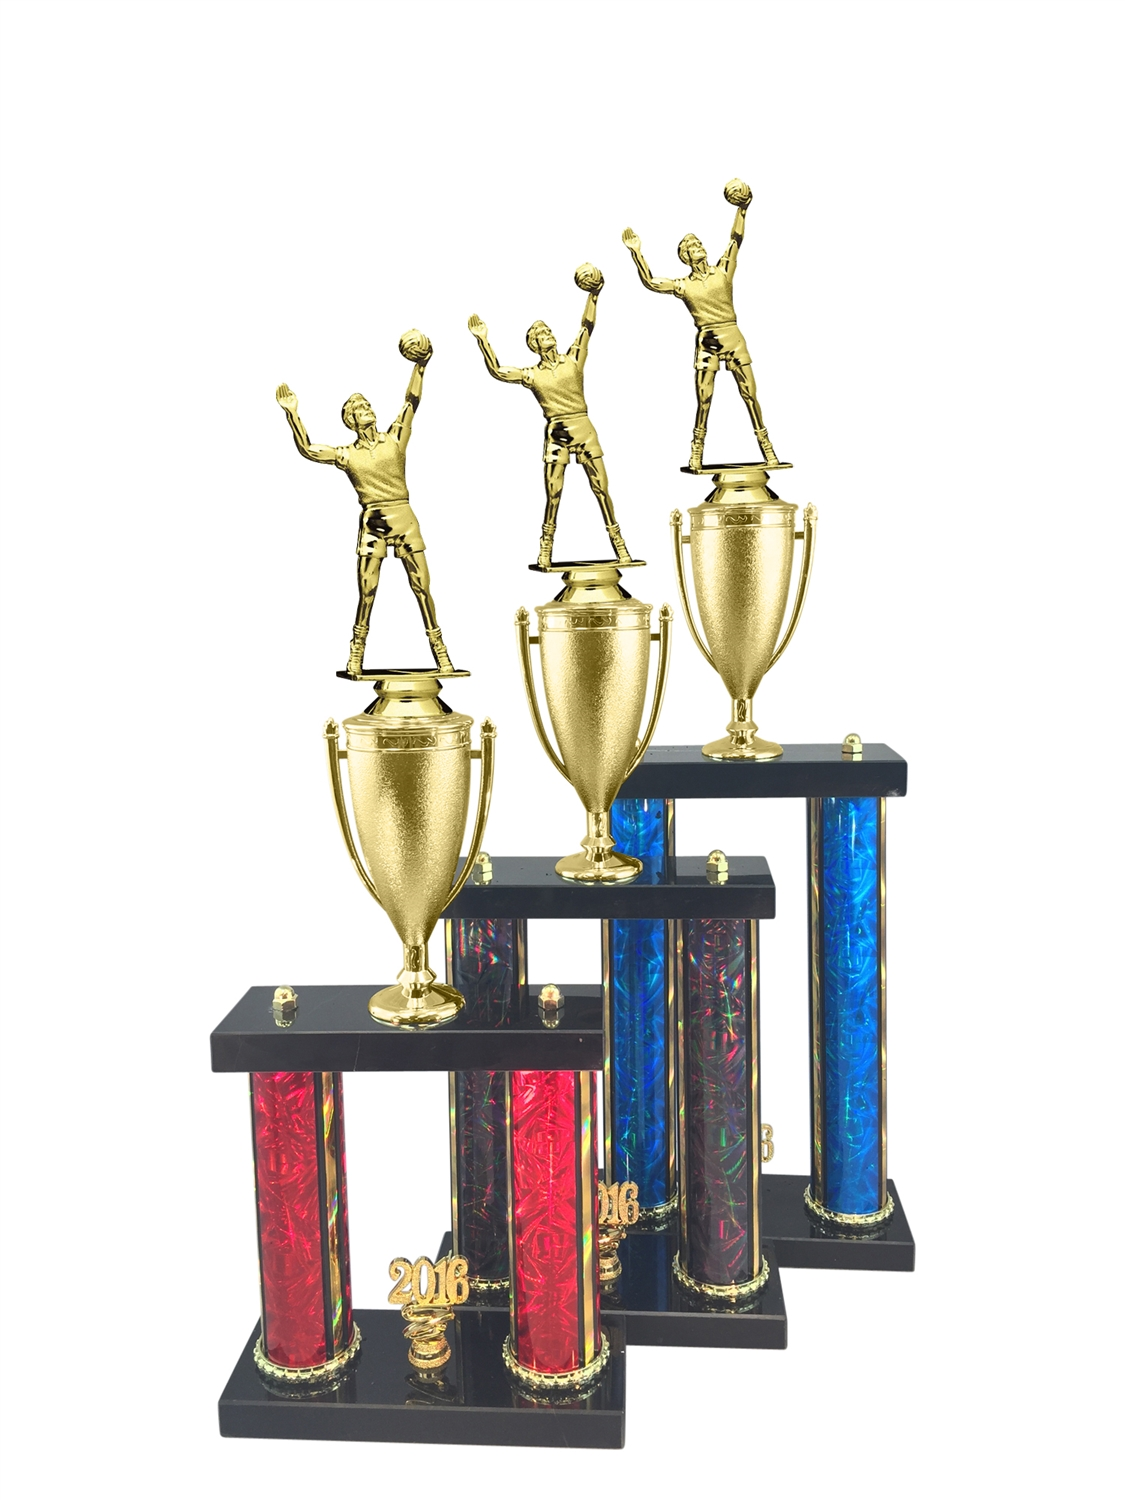 Male Volleyball Trophy Available in 11 Color & 3 Size Options